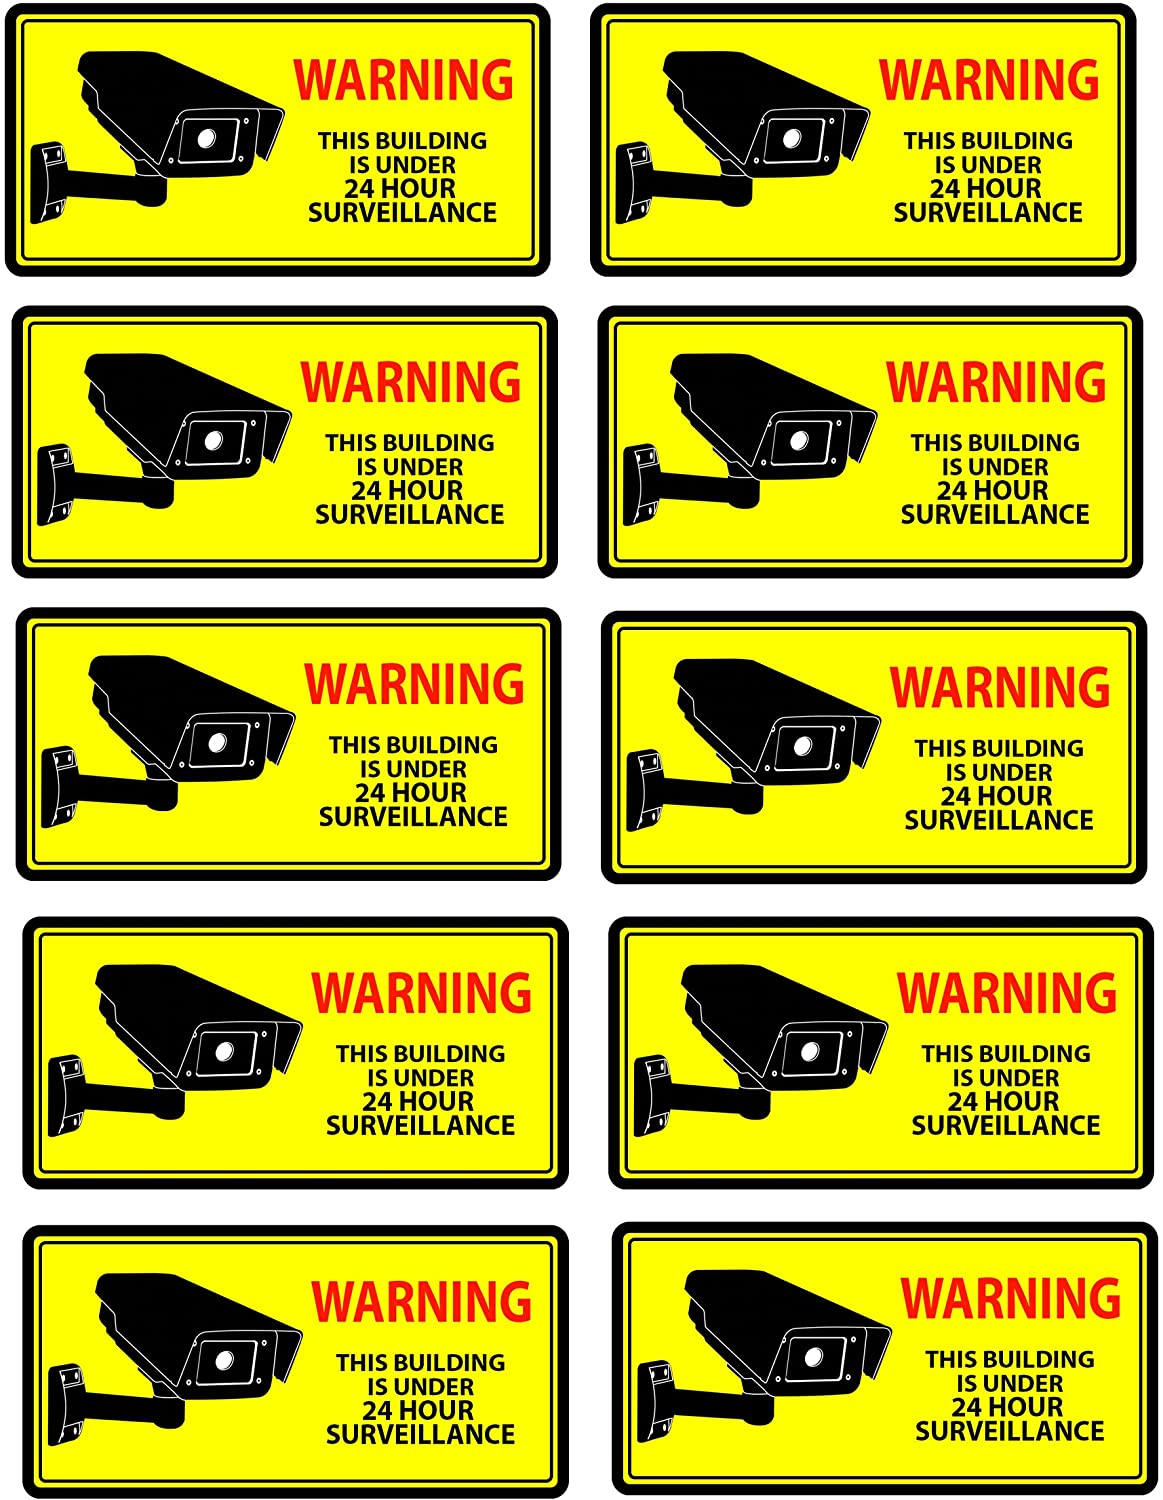 Security Camera Decal Warning Stickers, CCTV Video Surveillance Recording Signs from Vinyl for Indoors, Outdoors; by Mandala Crafts, Front Adhesive Solid Yellow